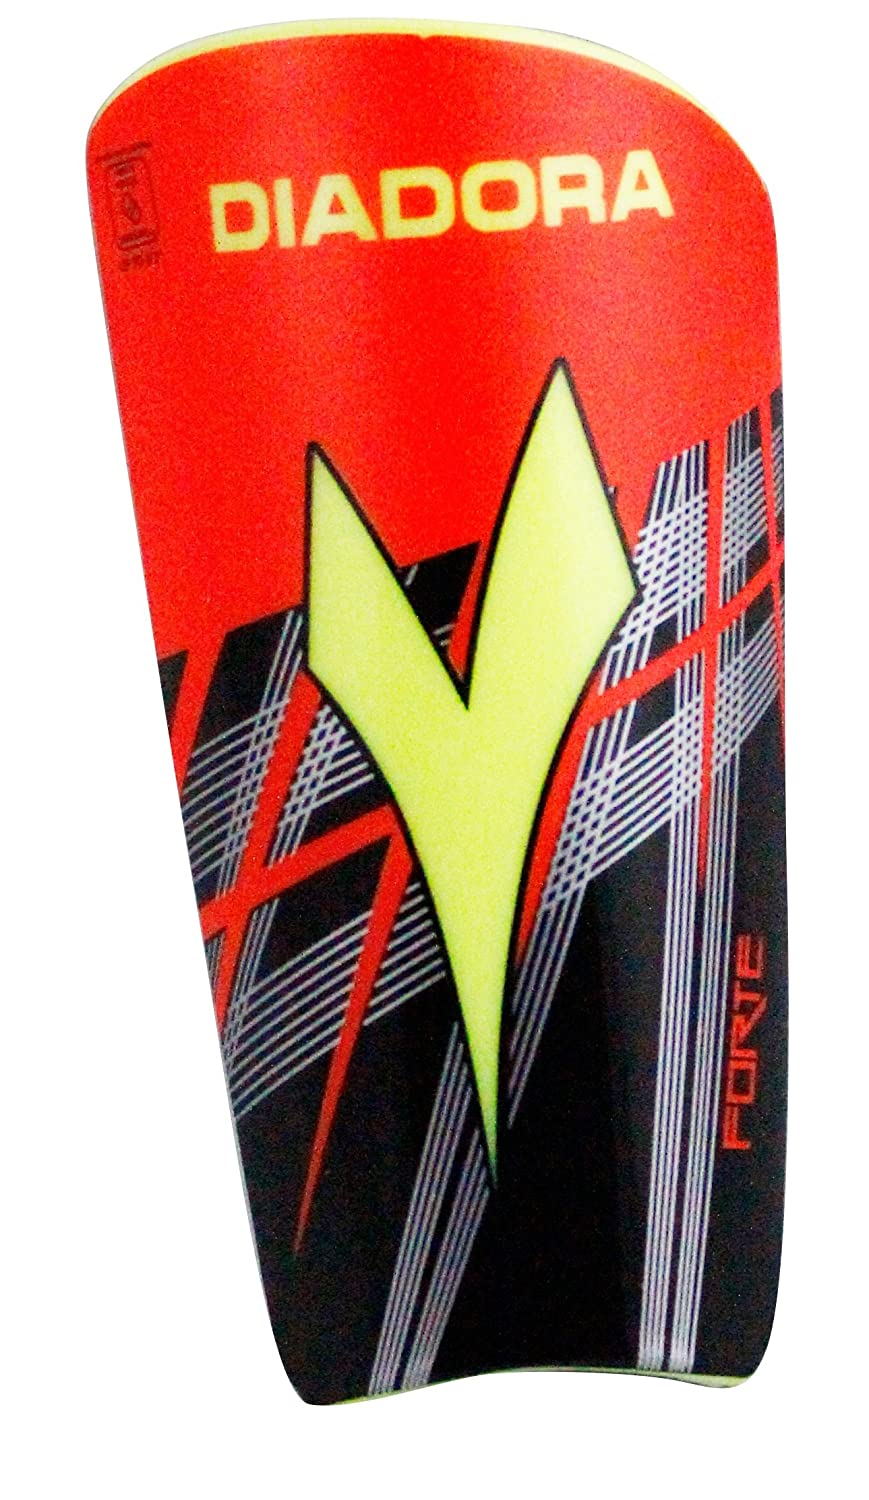 Diadora Forte Shin Guard B01FGERYBM Medium (8